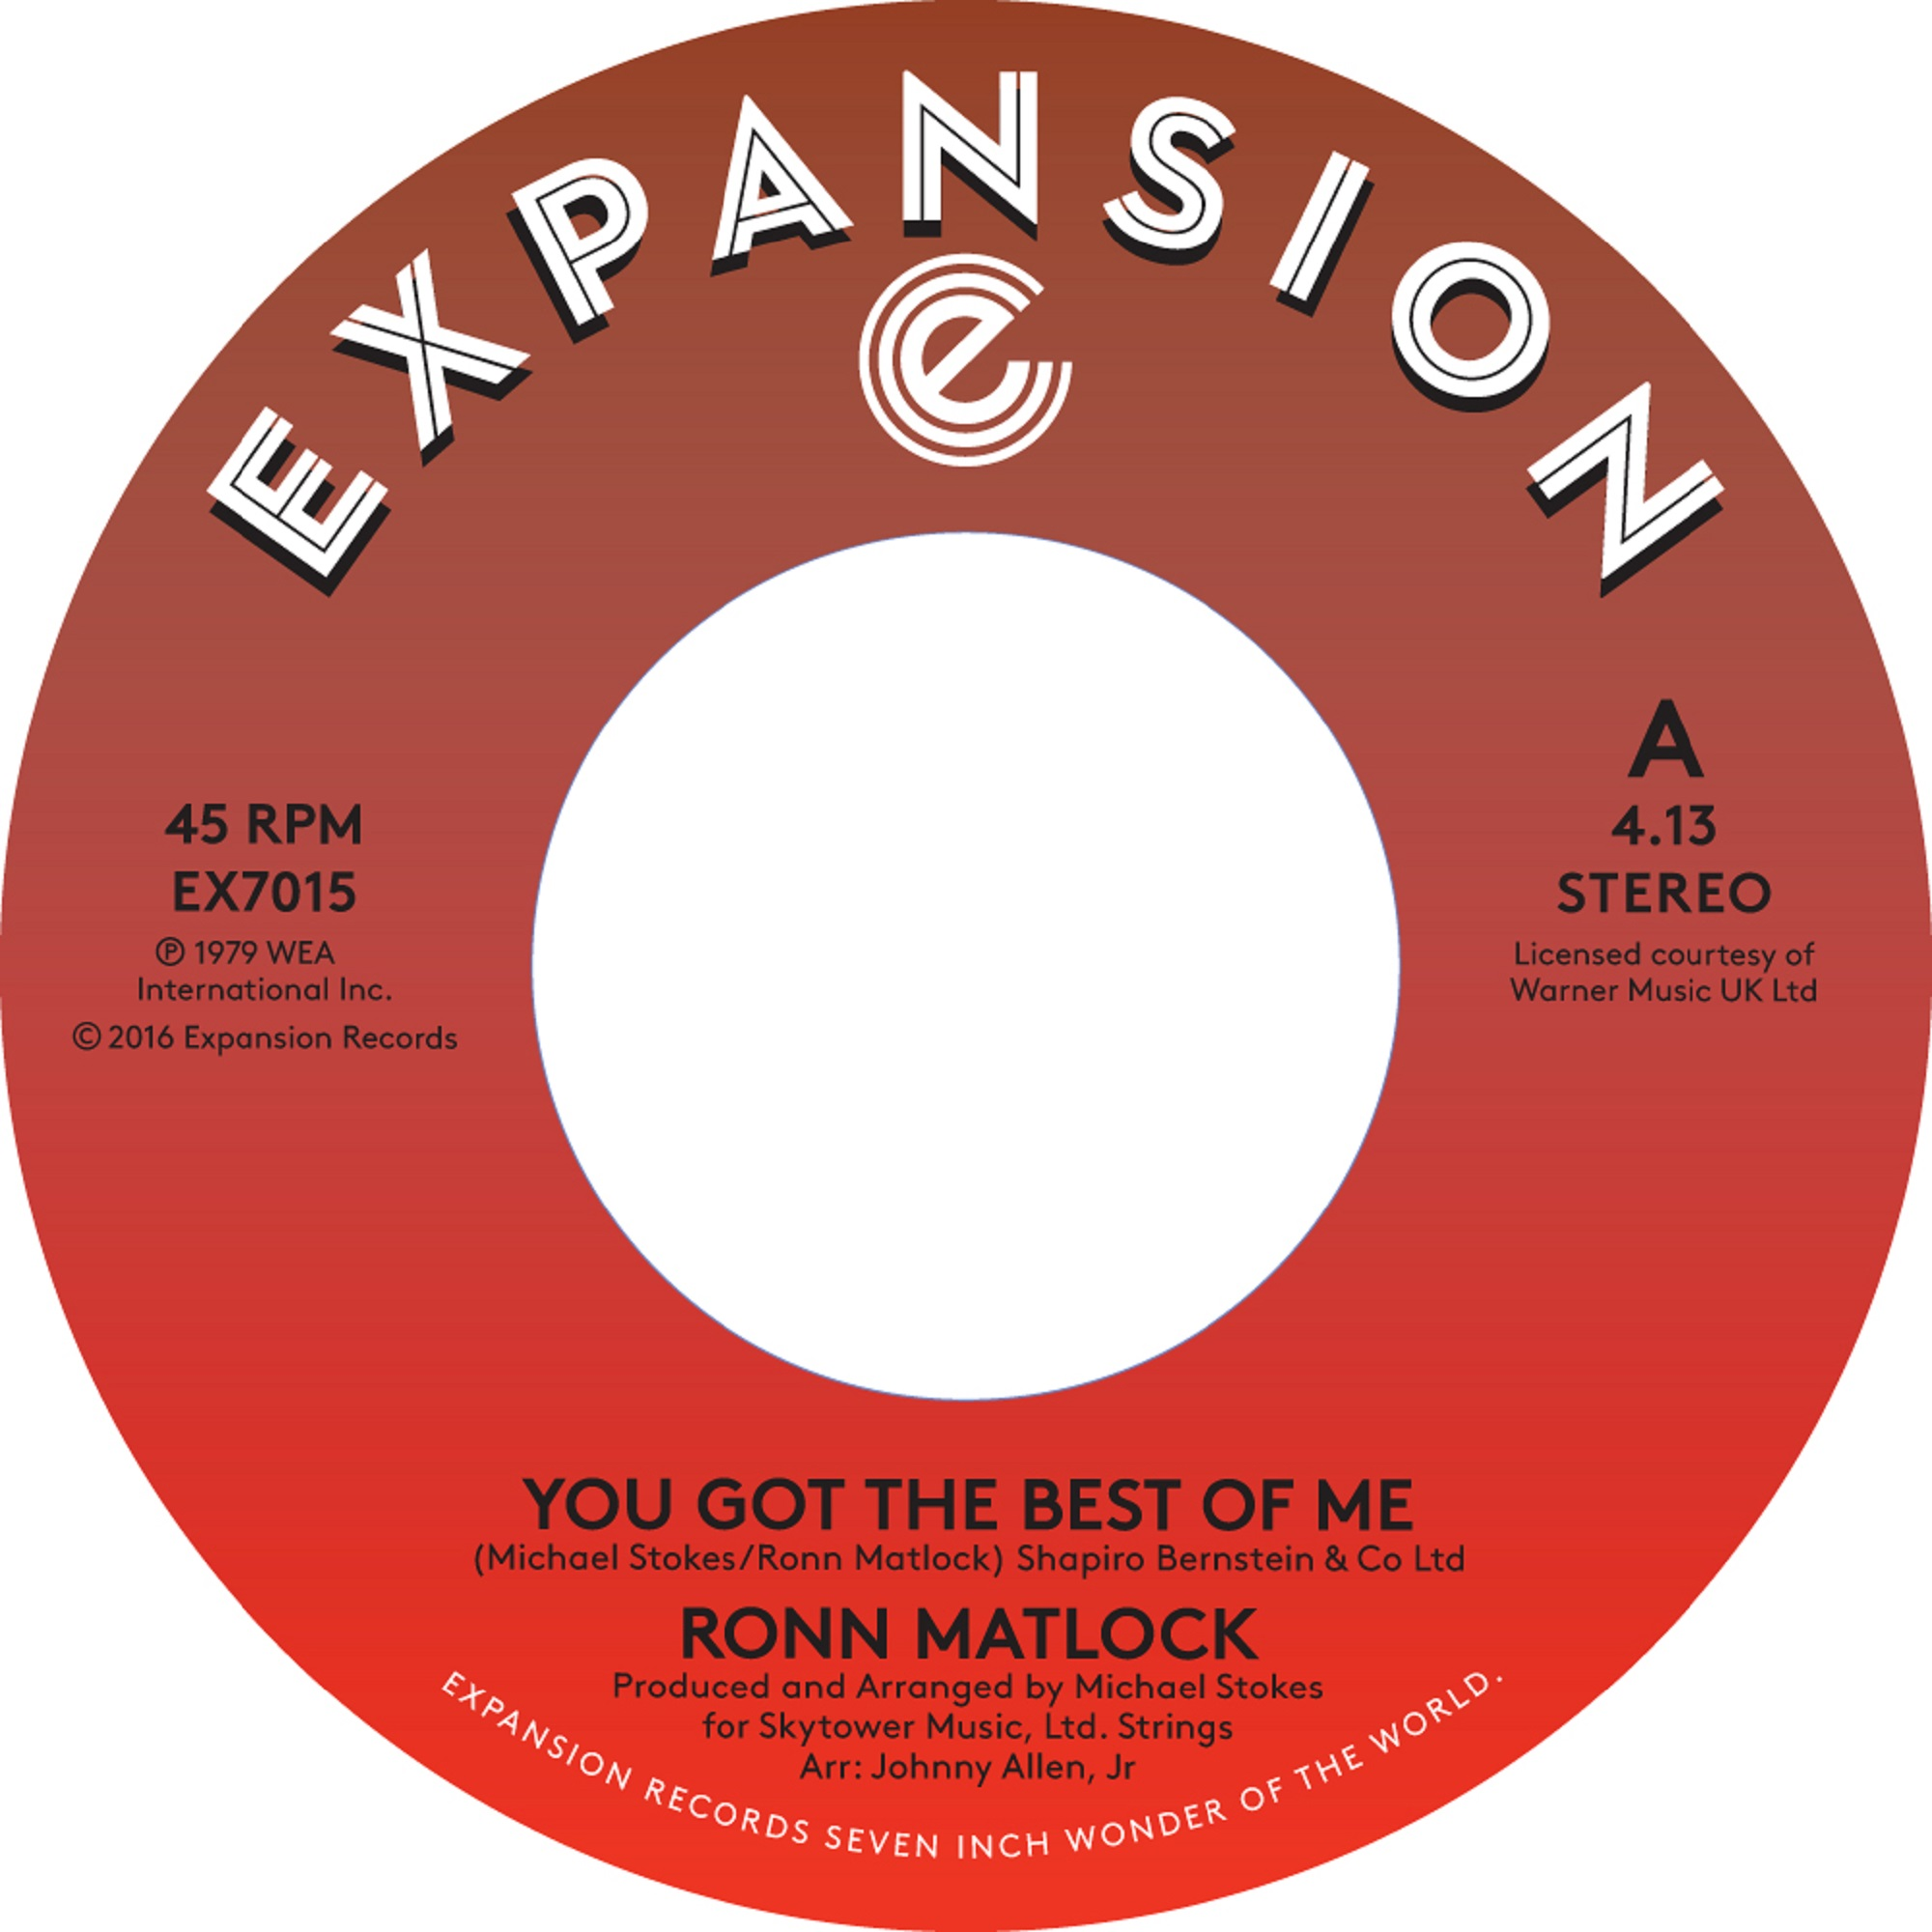 Ronn Matlock/YOU GOT THE BEST OF ME 7""